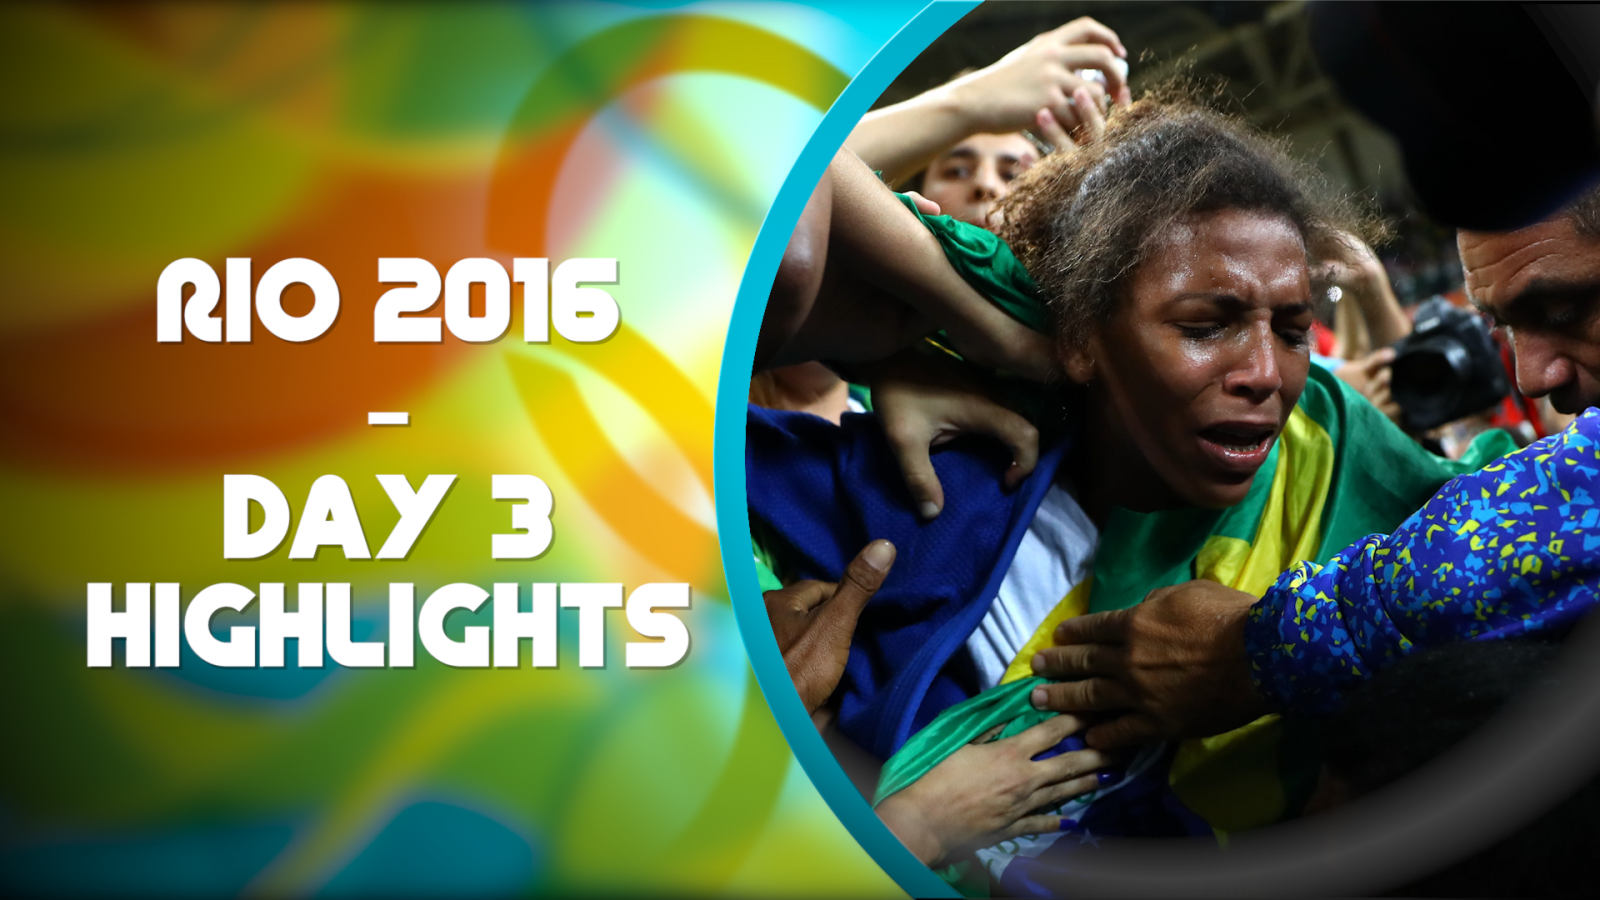 Rio 2016 Olympics: Day 3 highlights